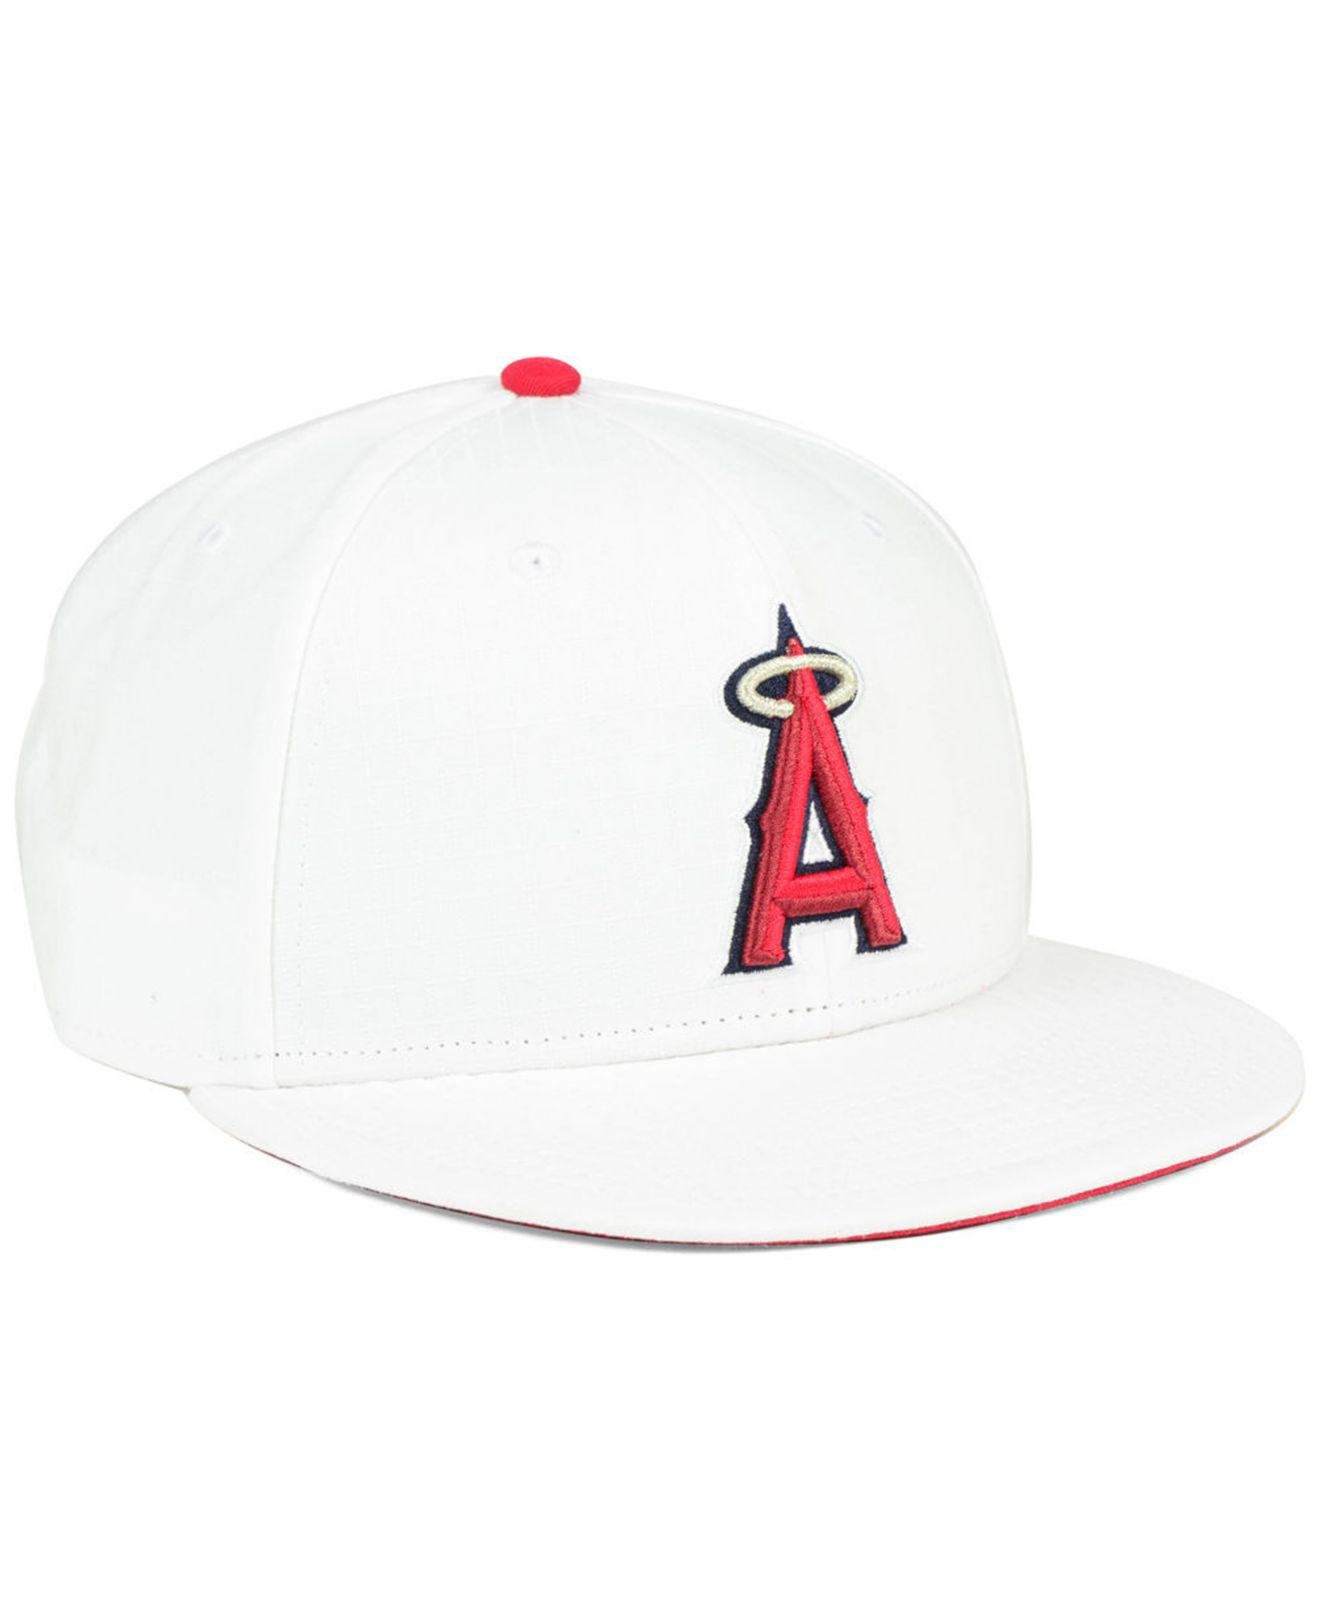 457429d3adb903 ... wholesale nike los angeles angels white ripstop snapback cap for men  lyst. view fullscreen 85d5d